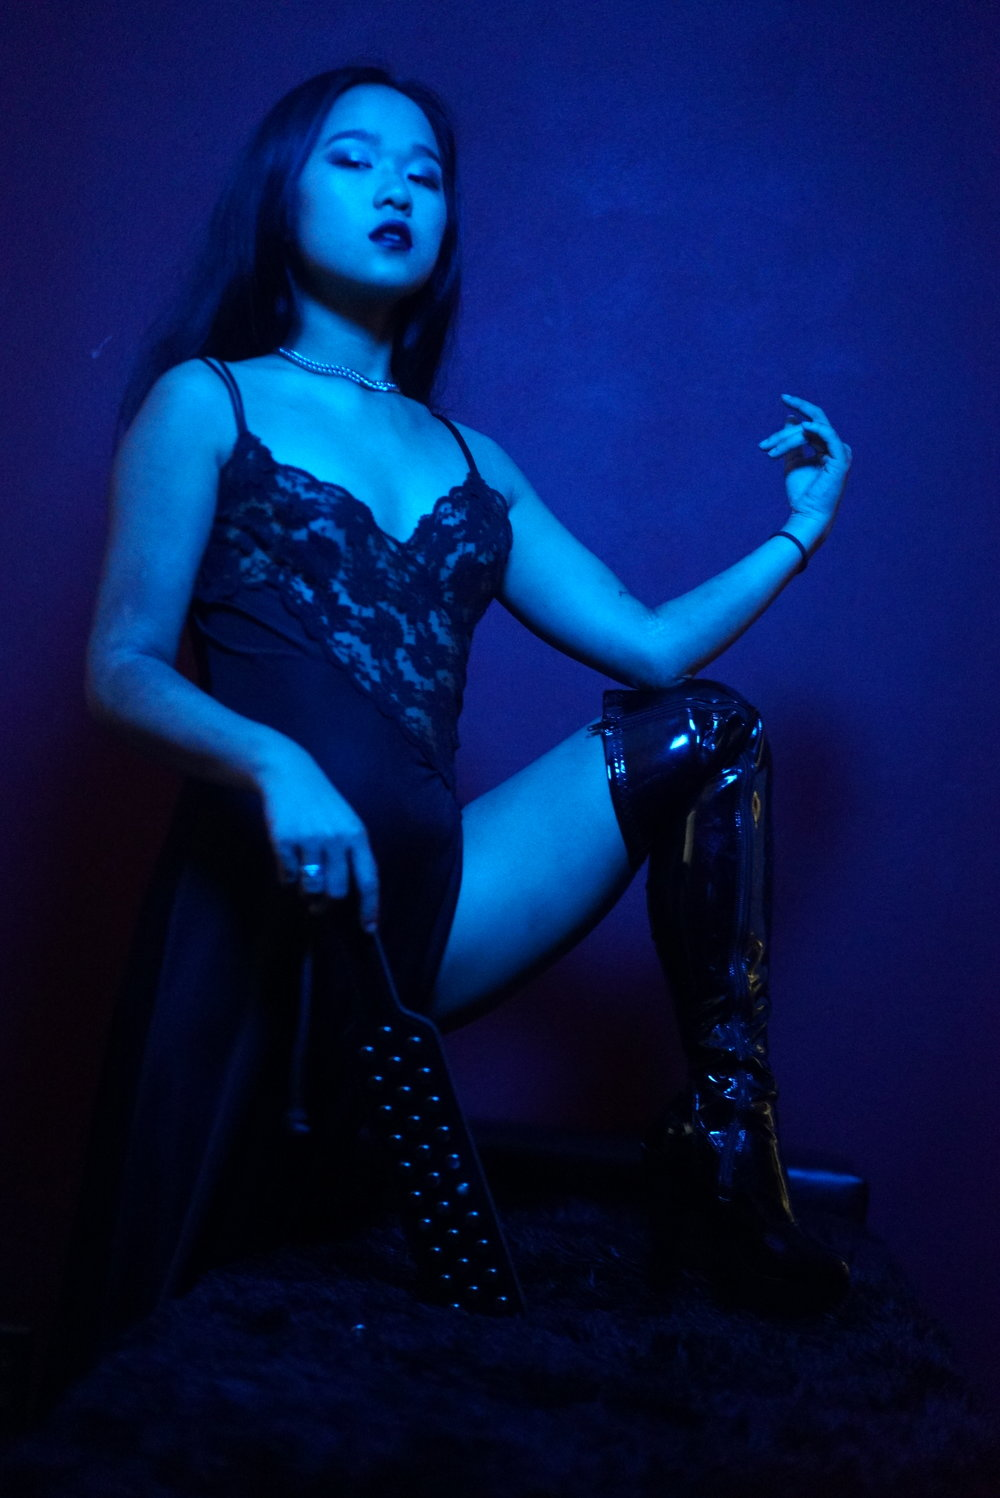 Asian New York professional dominatrix Empress Wu holding the impact tool she most prefers for doling out torture